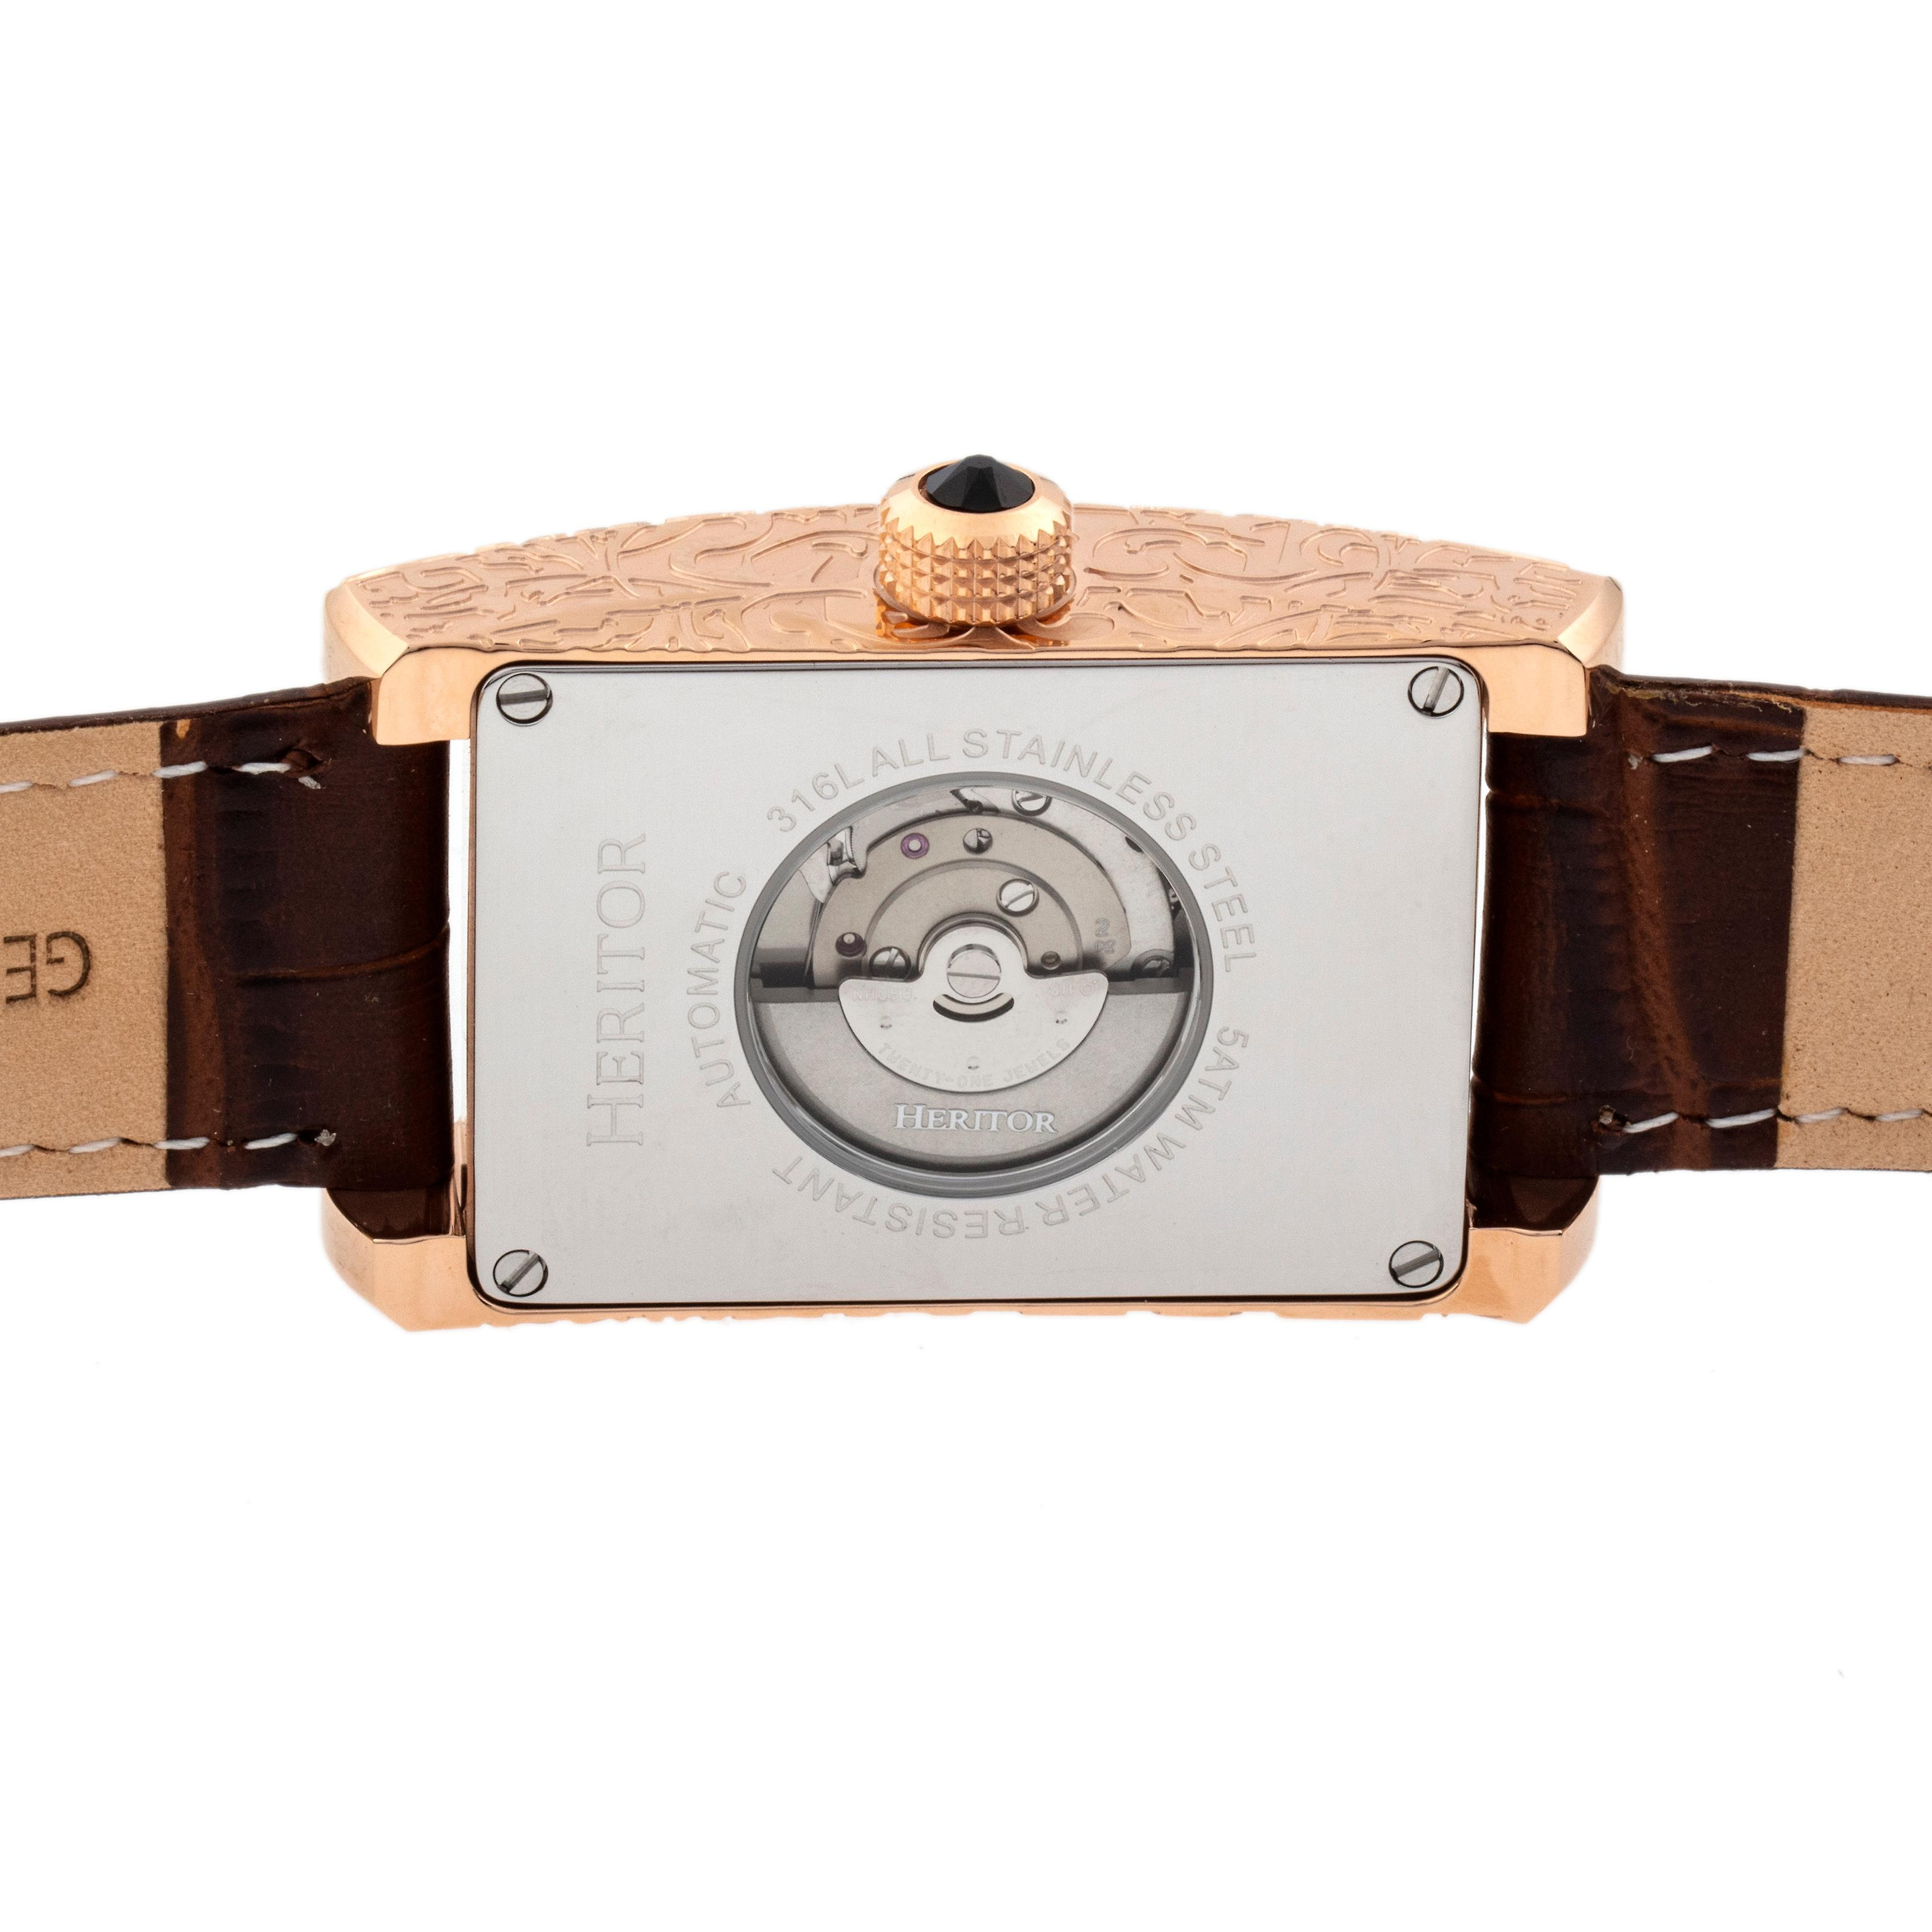 Heritor Automatic Jefferson Leather-Band Watch - Rose Gold/Black